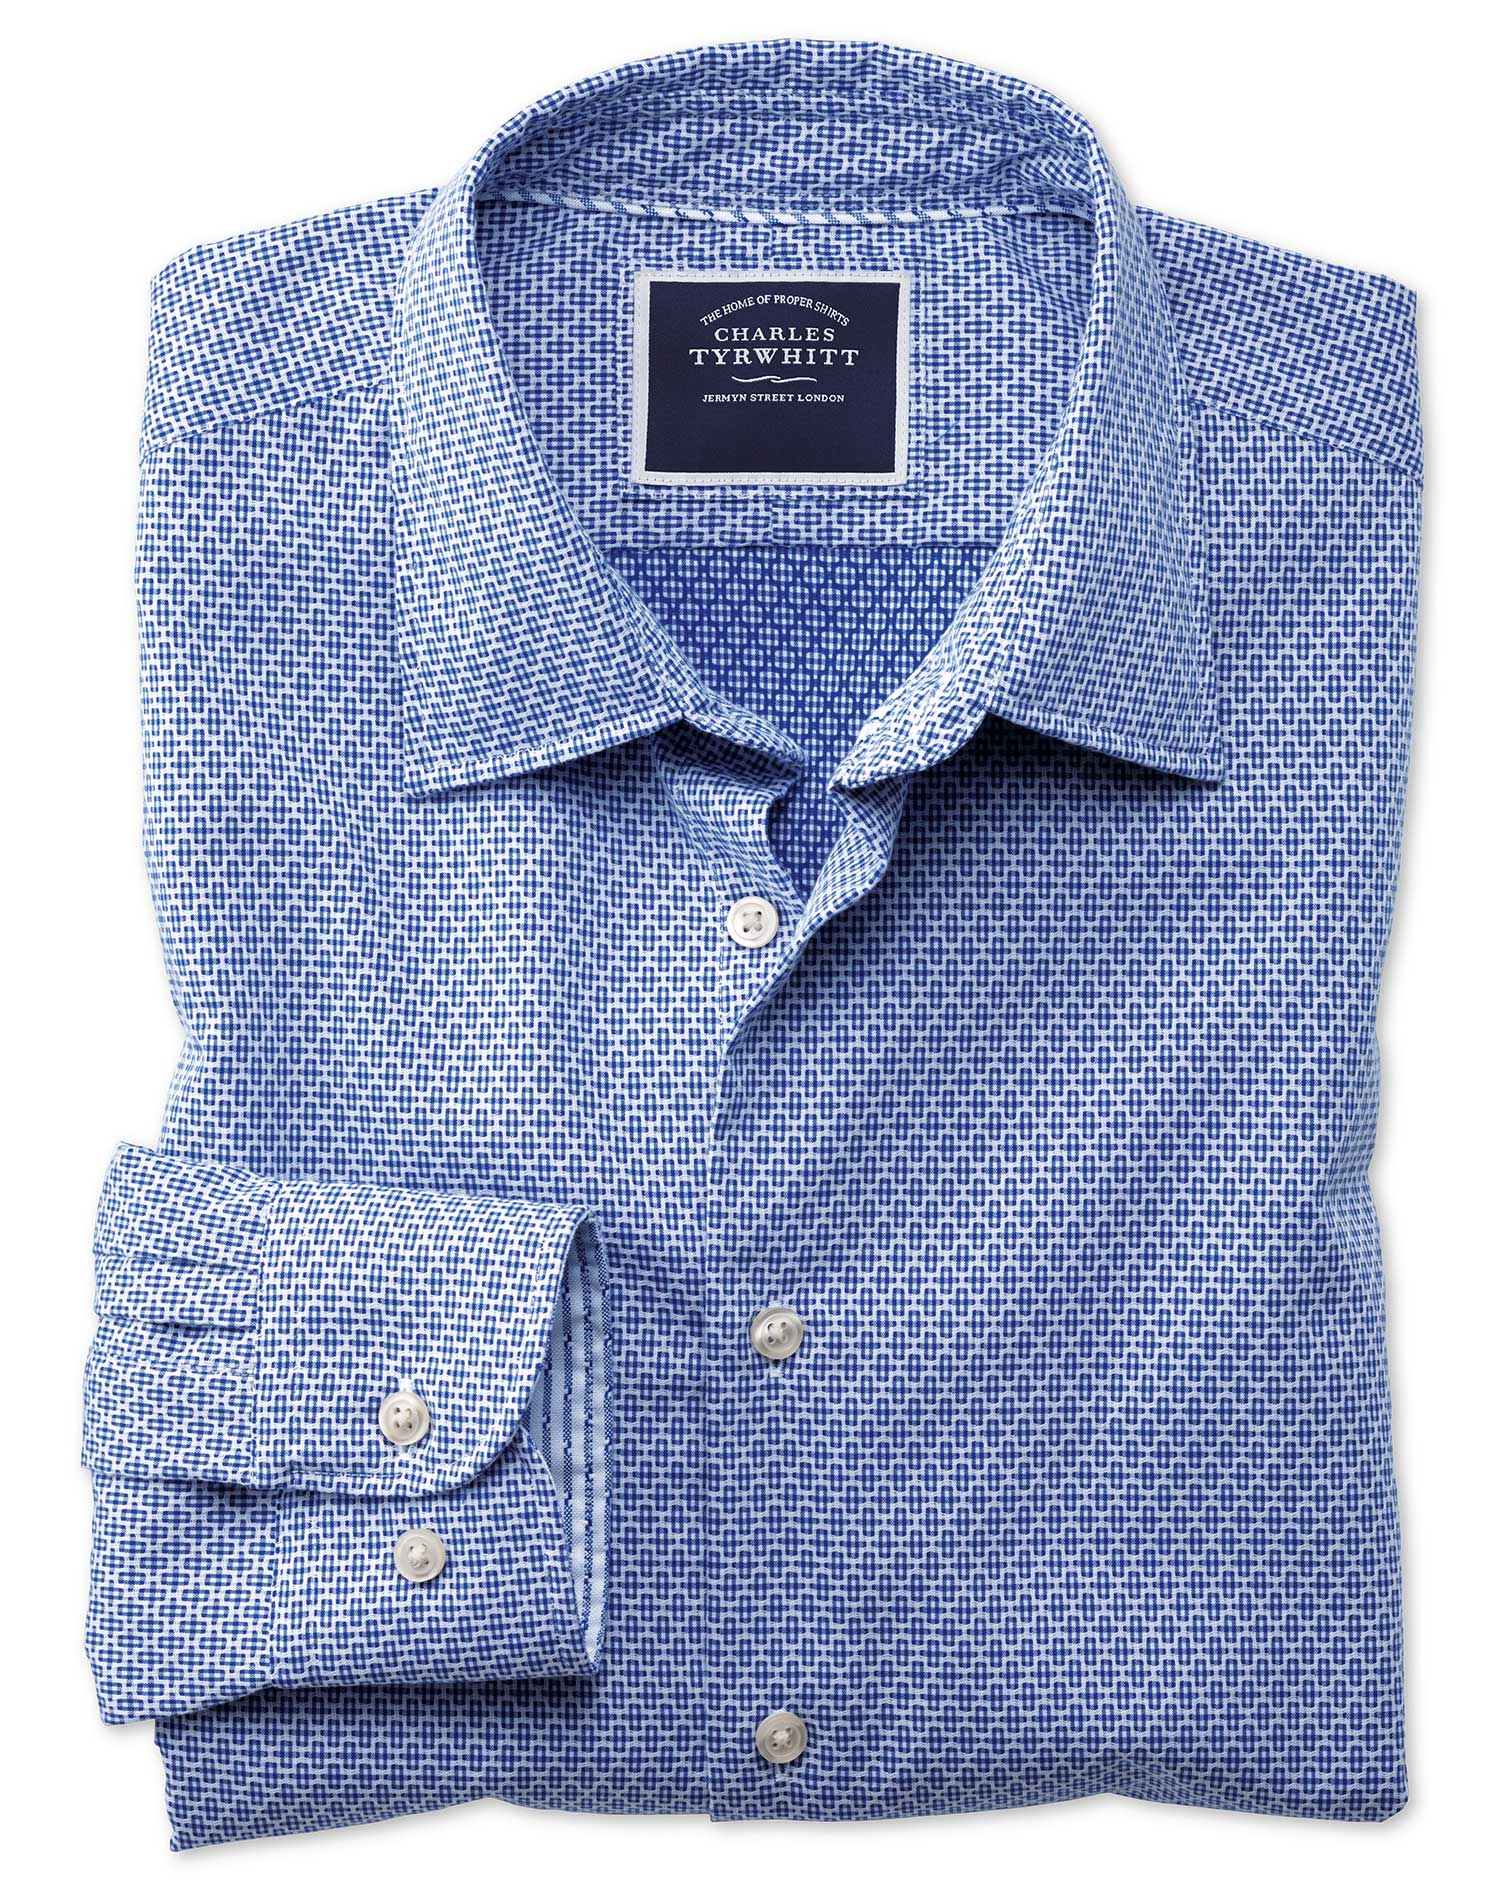 Slim Fit Washed Royal Blue Gingham Textured Cotton Shirt Single Cuff Size Medium by Charles Tyrwhitt